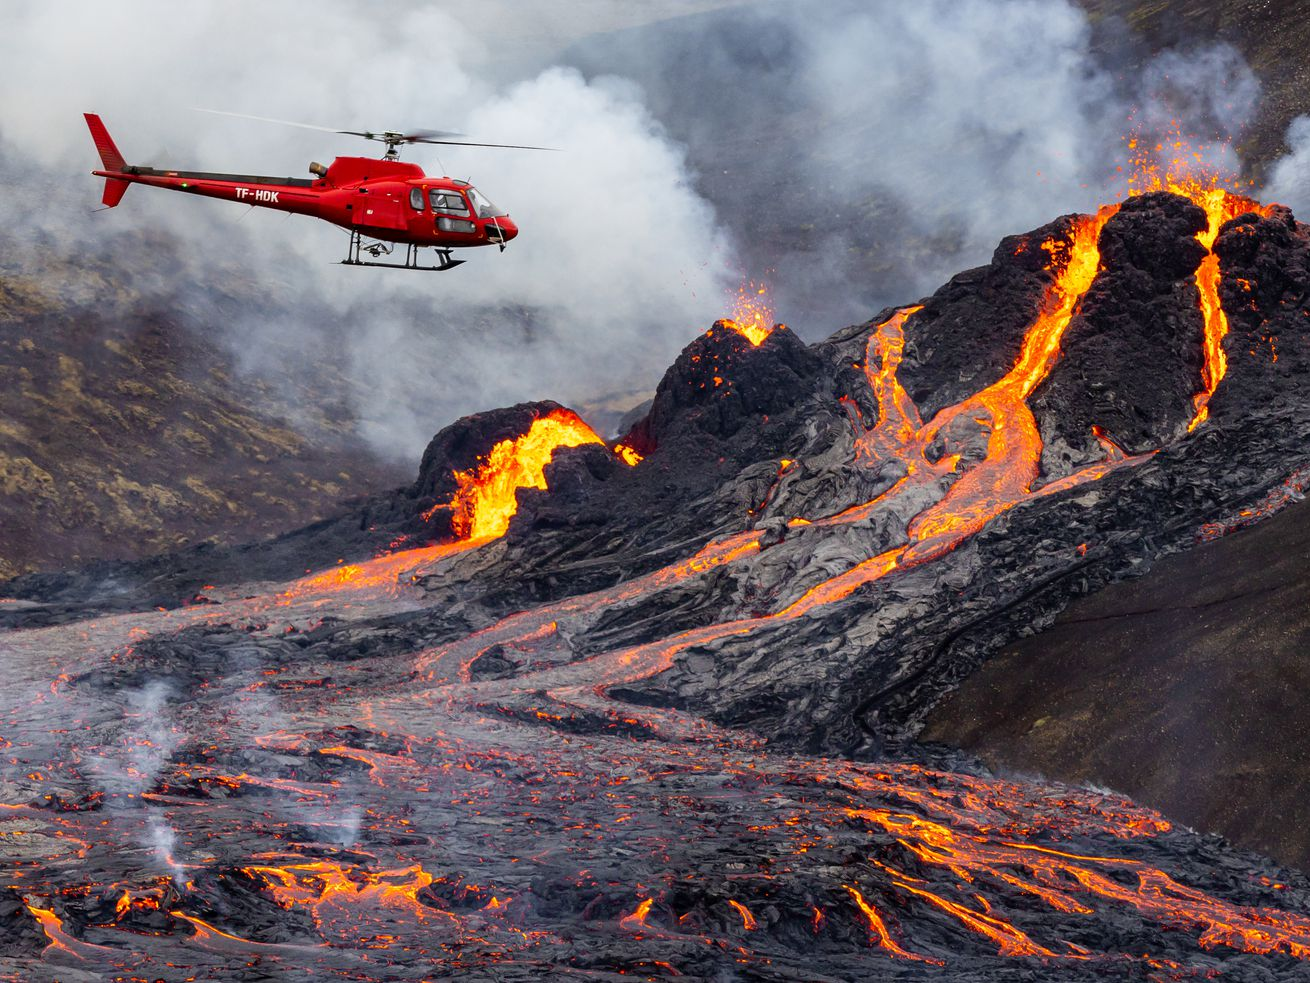 Streams of orange-red lava drip down the sides of a black mountain spewing plumes of thick, white smoke. A red helicopter hovers a little ways above the scene.